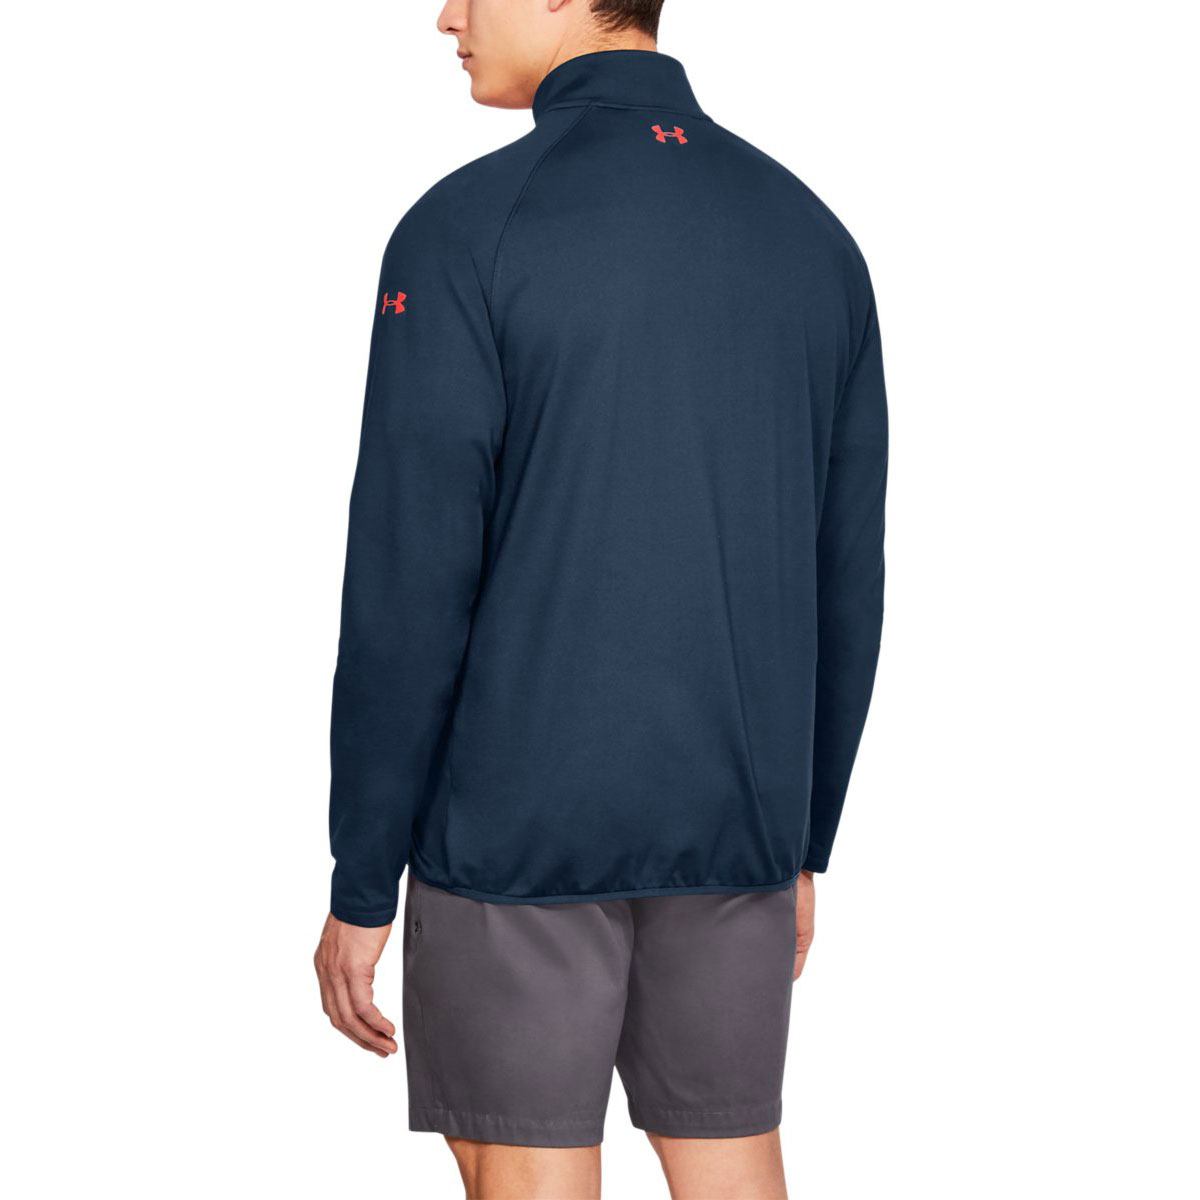 Under-Armour-Mens-Golf-1-4-Zip-Moisture-Control-Crestable-Sweater-45-OFF-RRP thumbnail 7